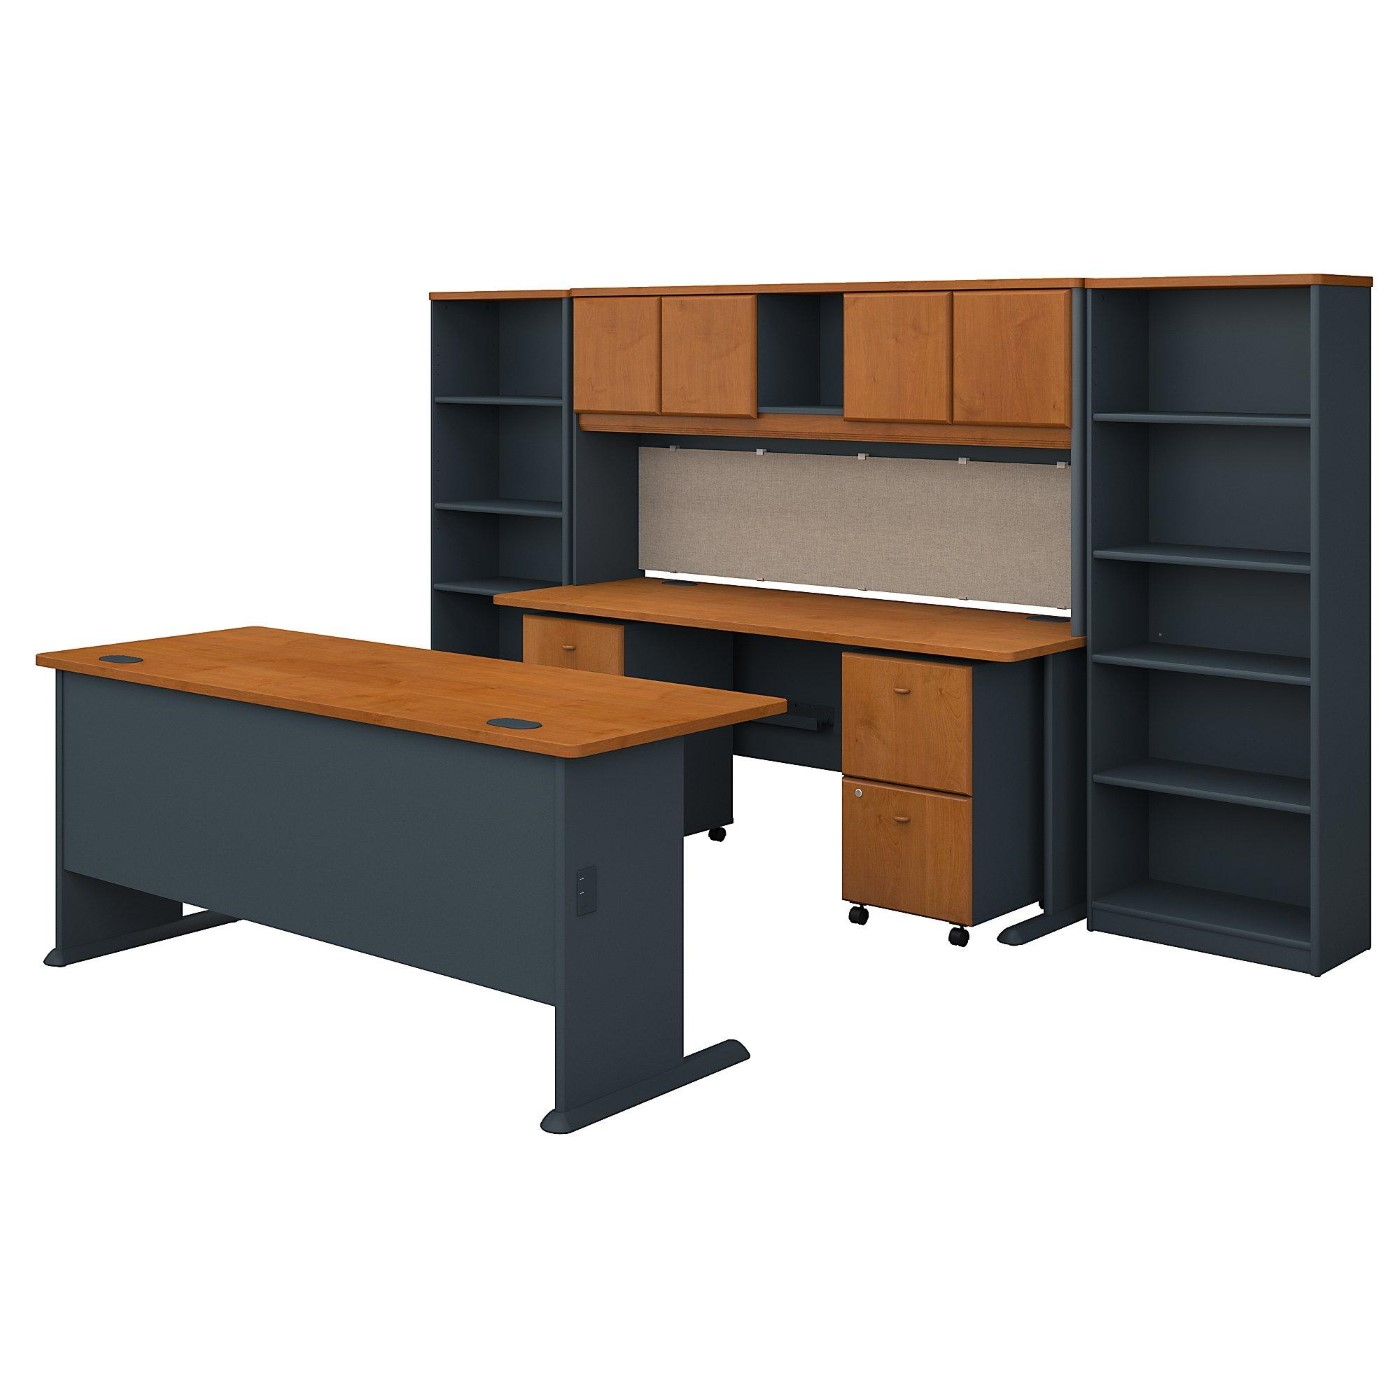 BUSH BUSINESS FURNITURE SERIES A 72W DESK WITH CREDENZA, HUTCH, BOOKCASES AND STORAGE. FREE SHIPPING</font></b></font>&#x1F384<font color=red><b>ERGONOMICHOME HOLIDAY SALE - ENDS DEC. 17, 2019</b></font>&#x1F384